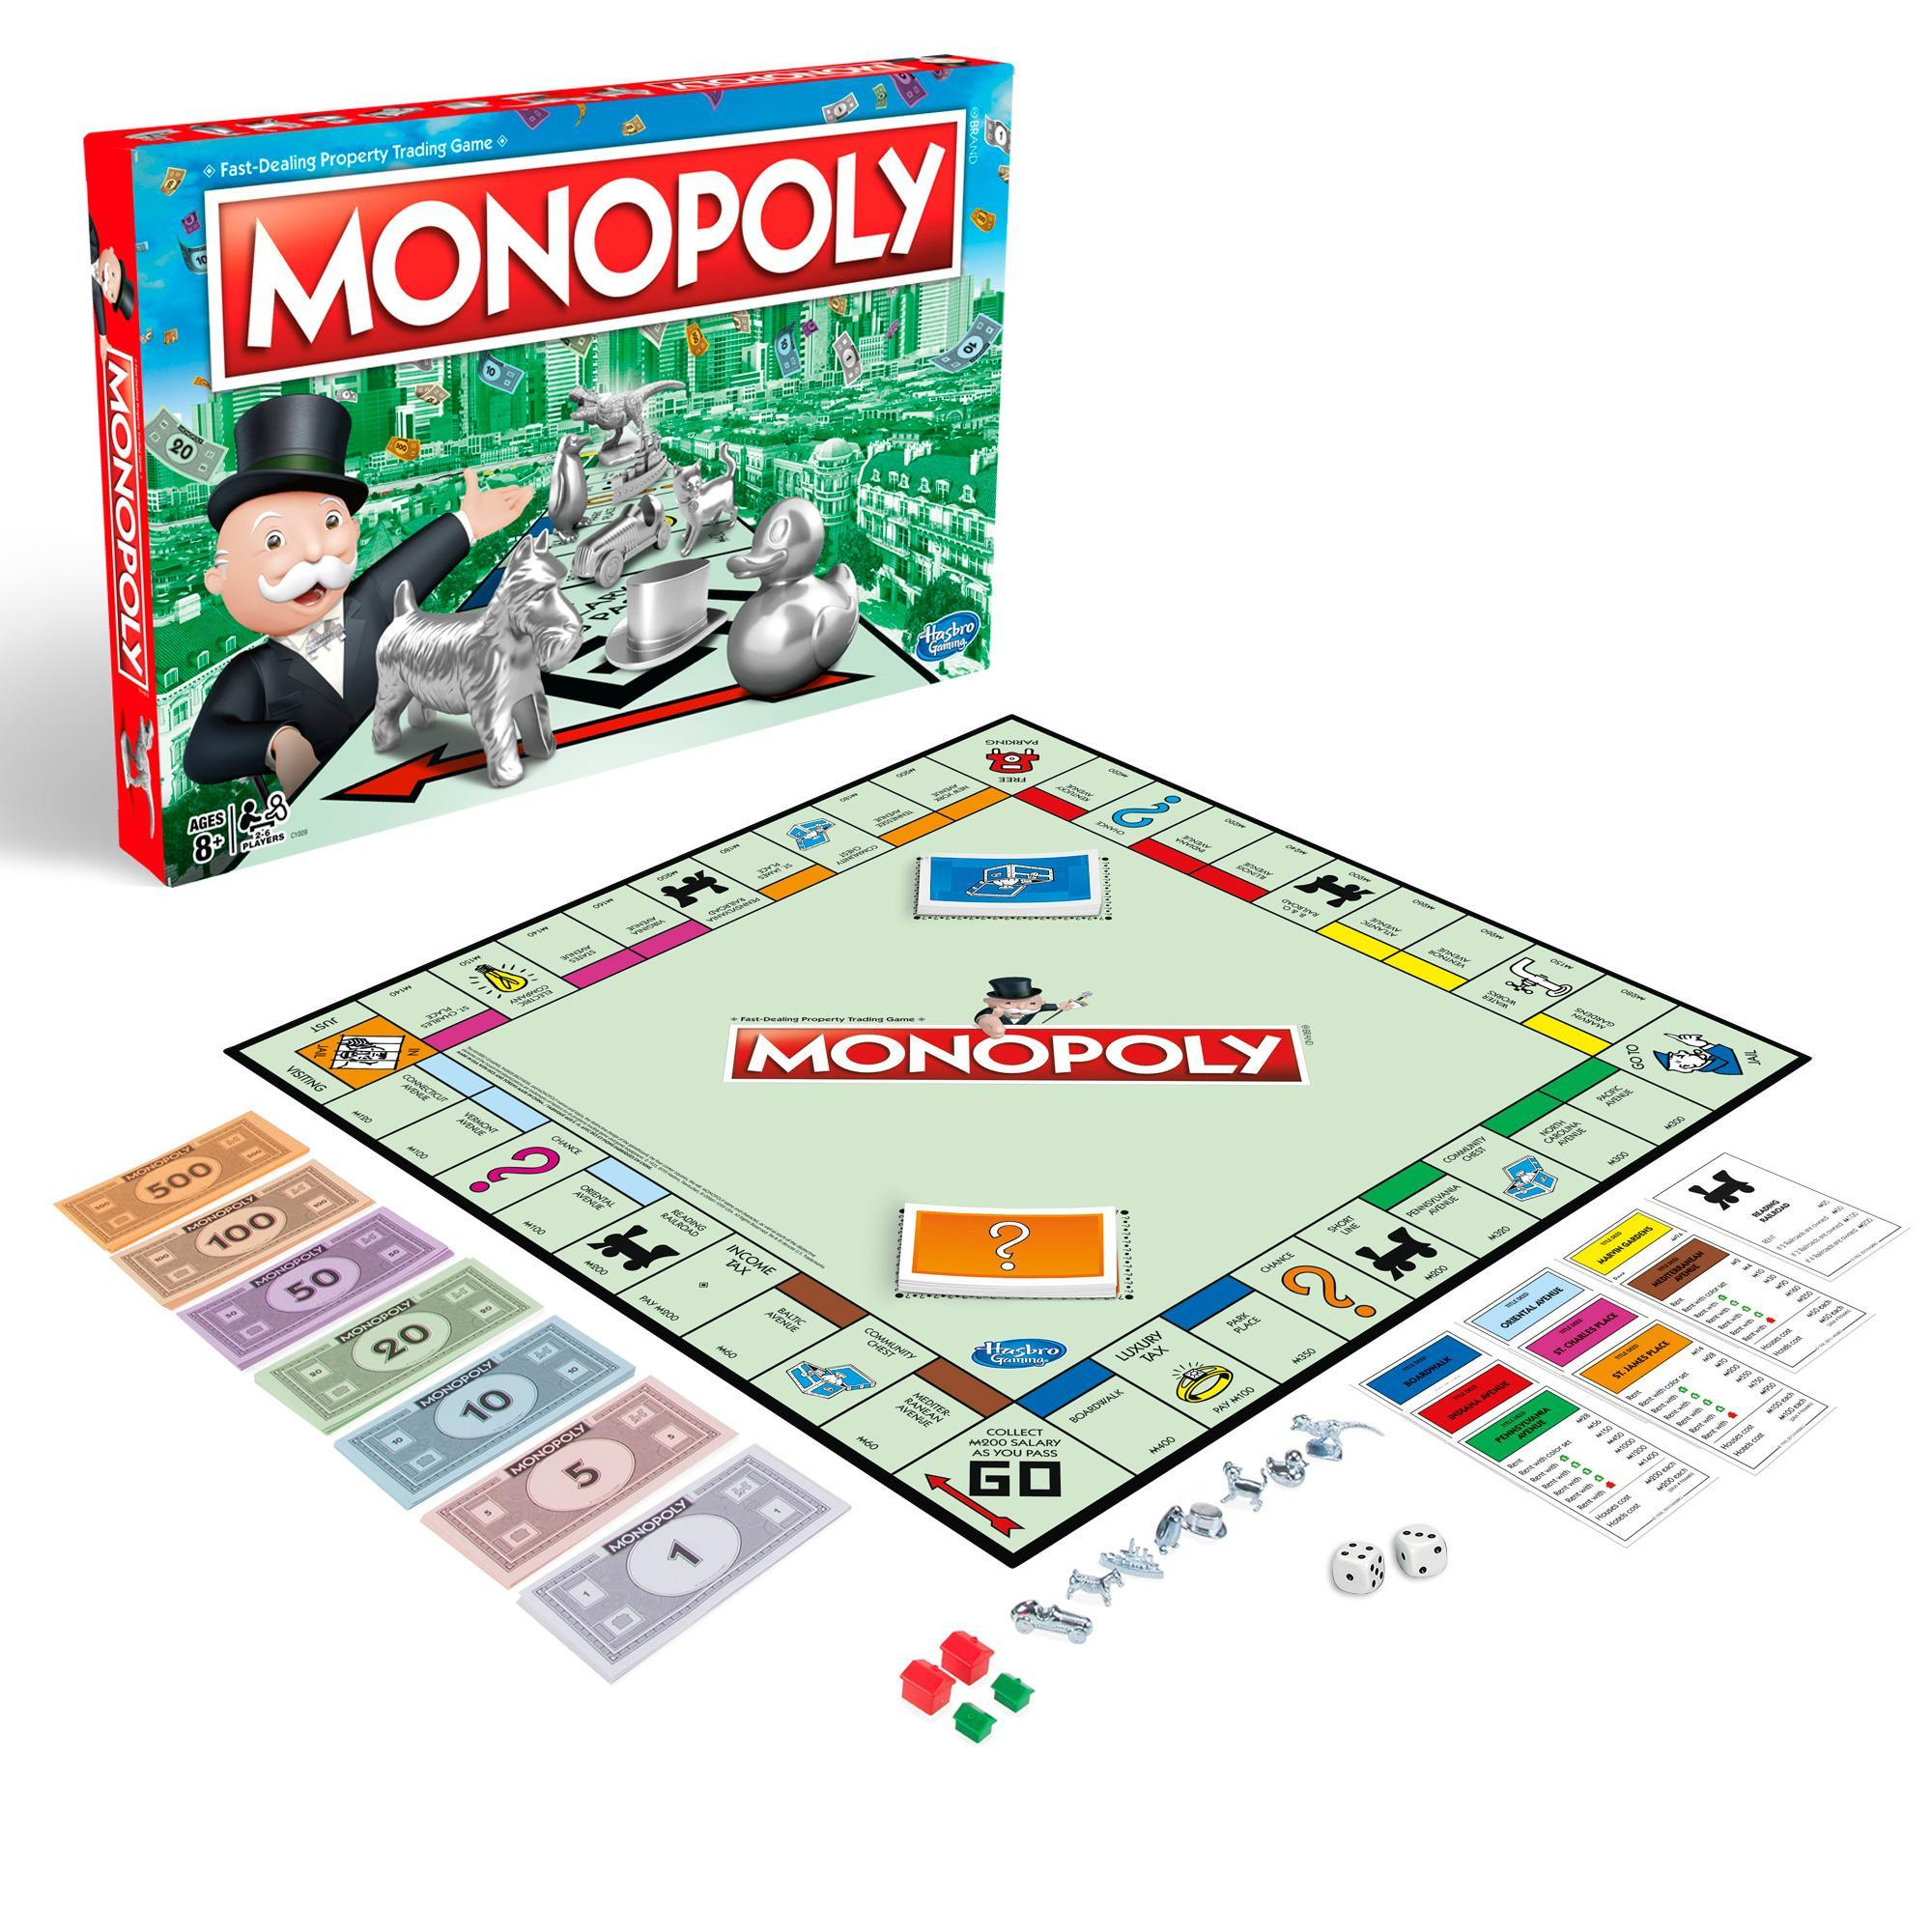 10 best board games | The Independent